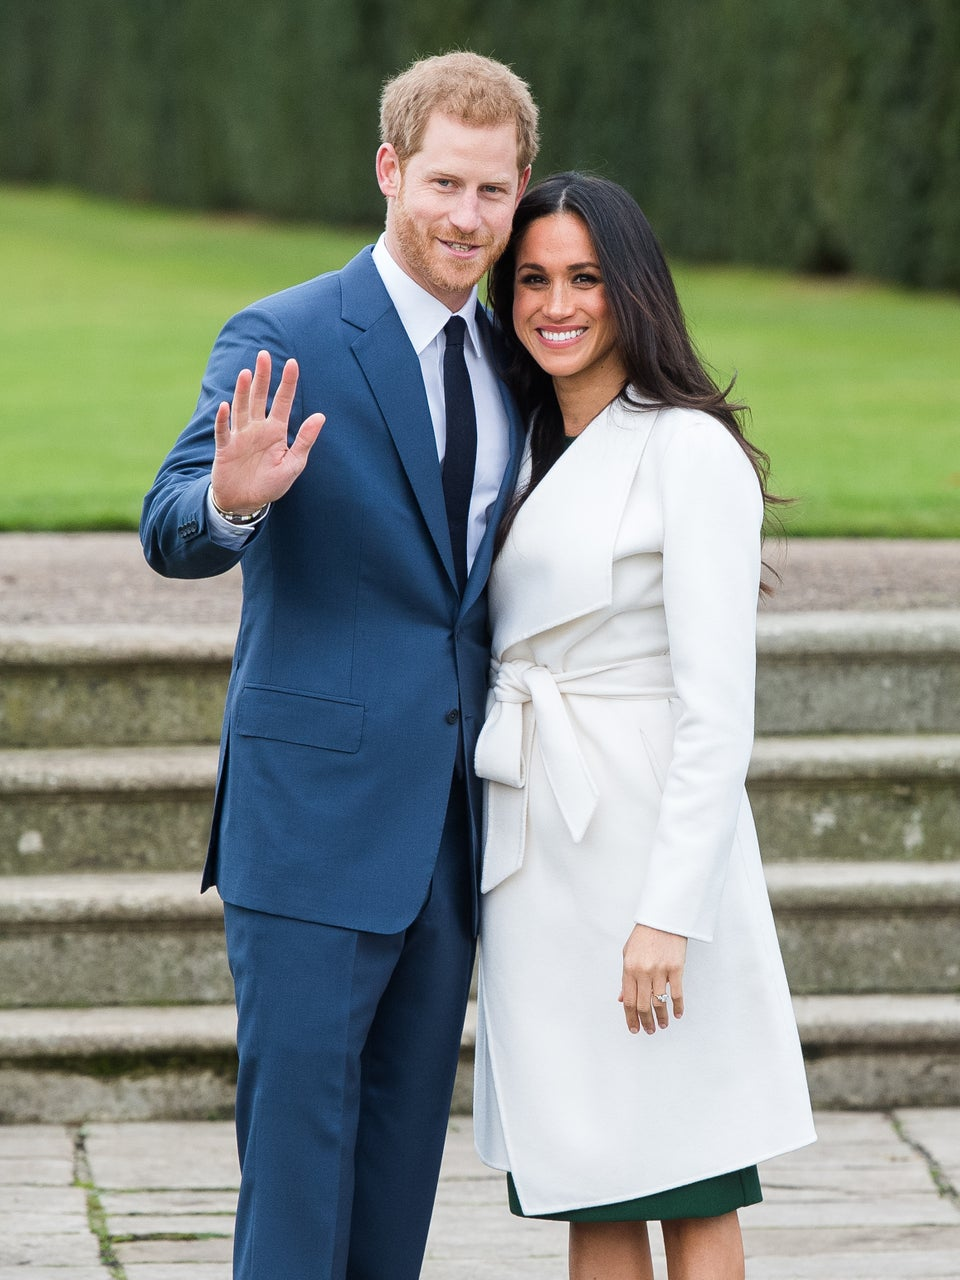 Black Twitter Wants An Invite To Prince Harry And Meghan Markle's Royal Wedding